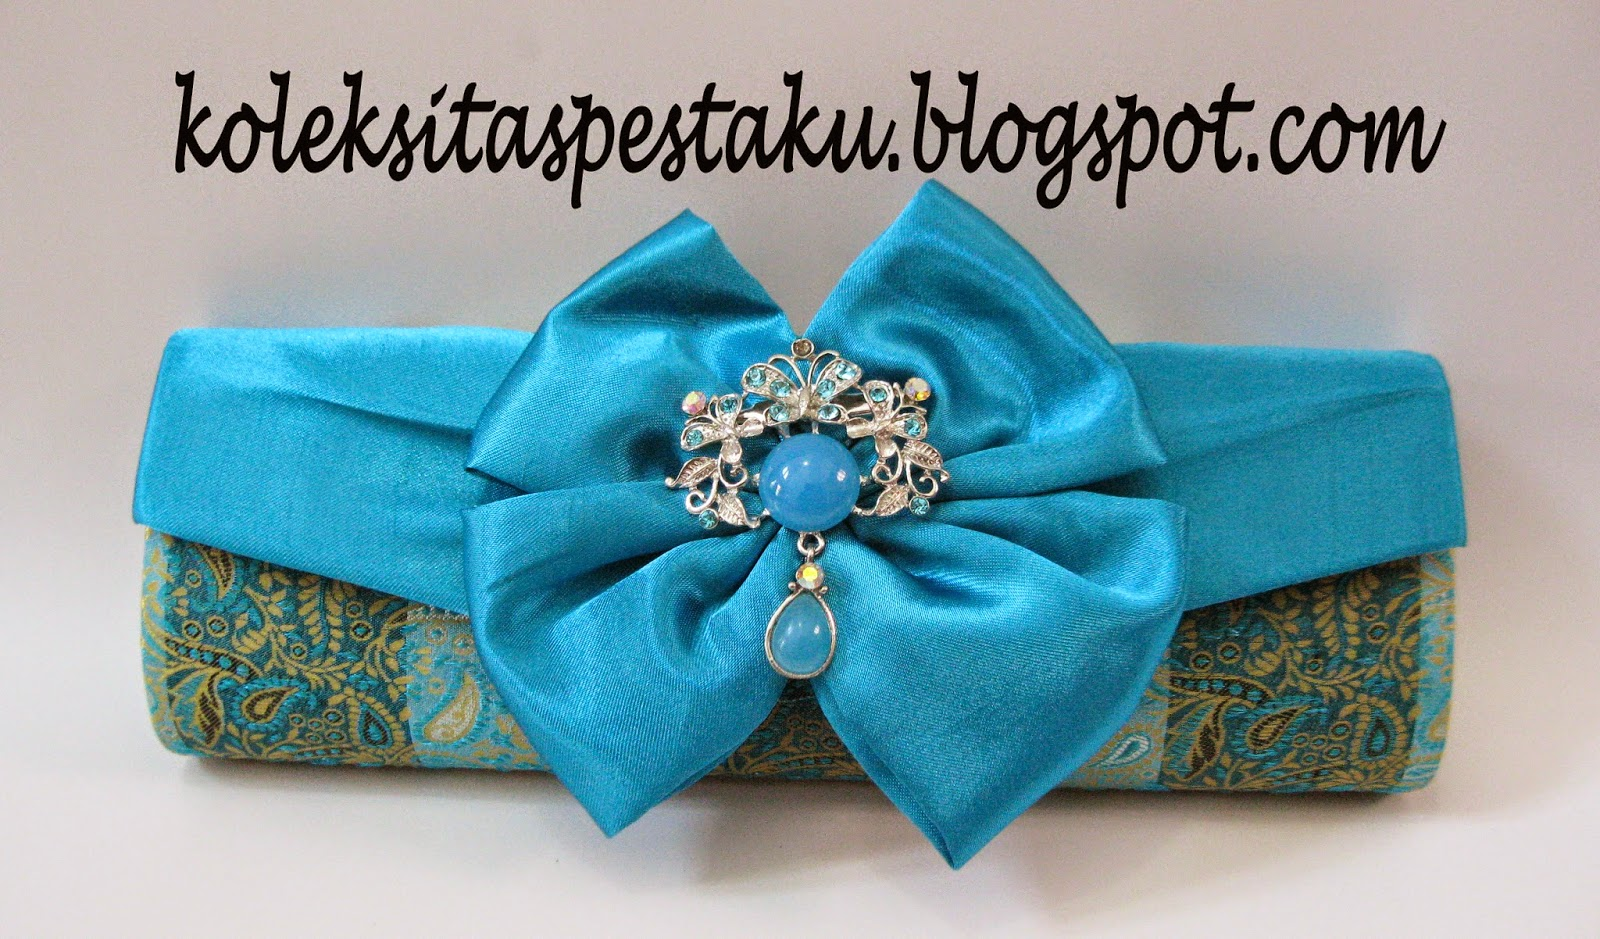 Tas Pesta Clutch Bag Sari India Biru Tosca